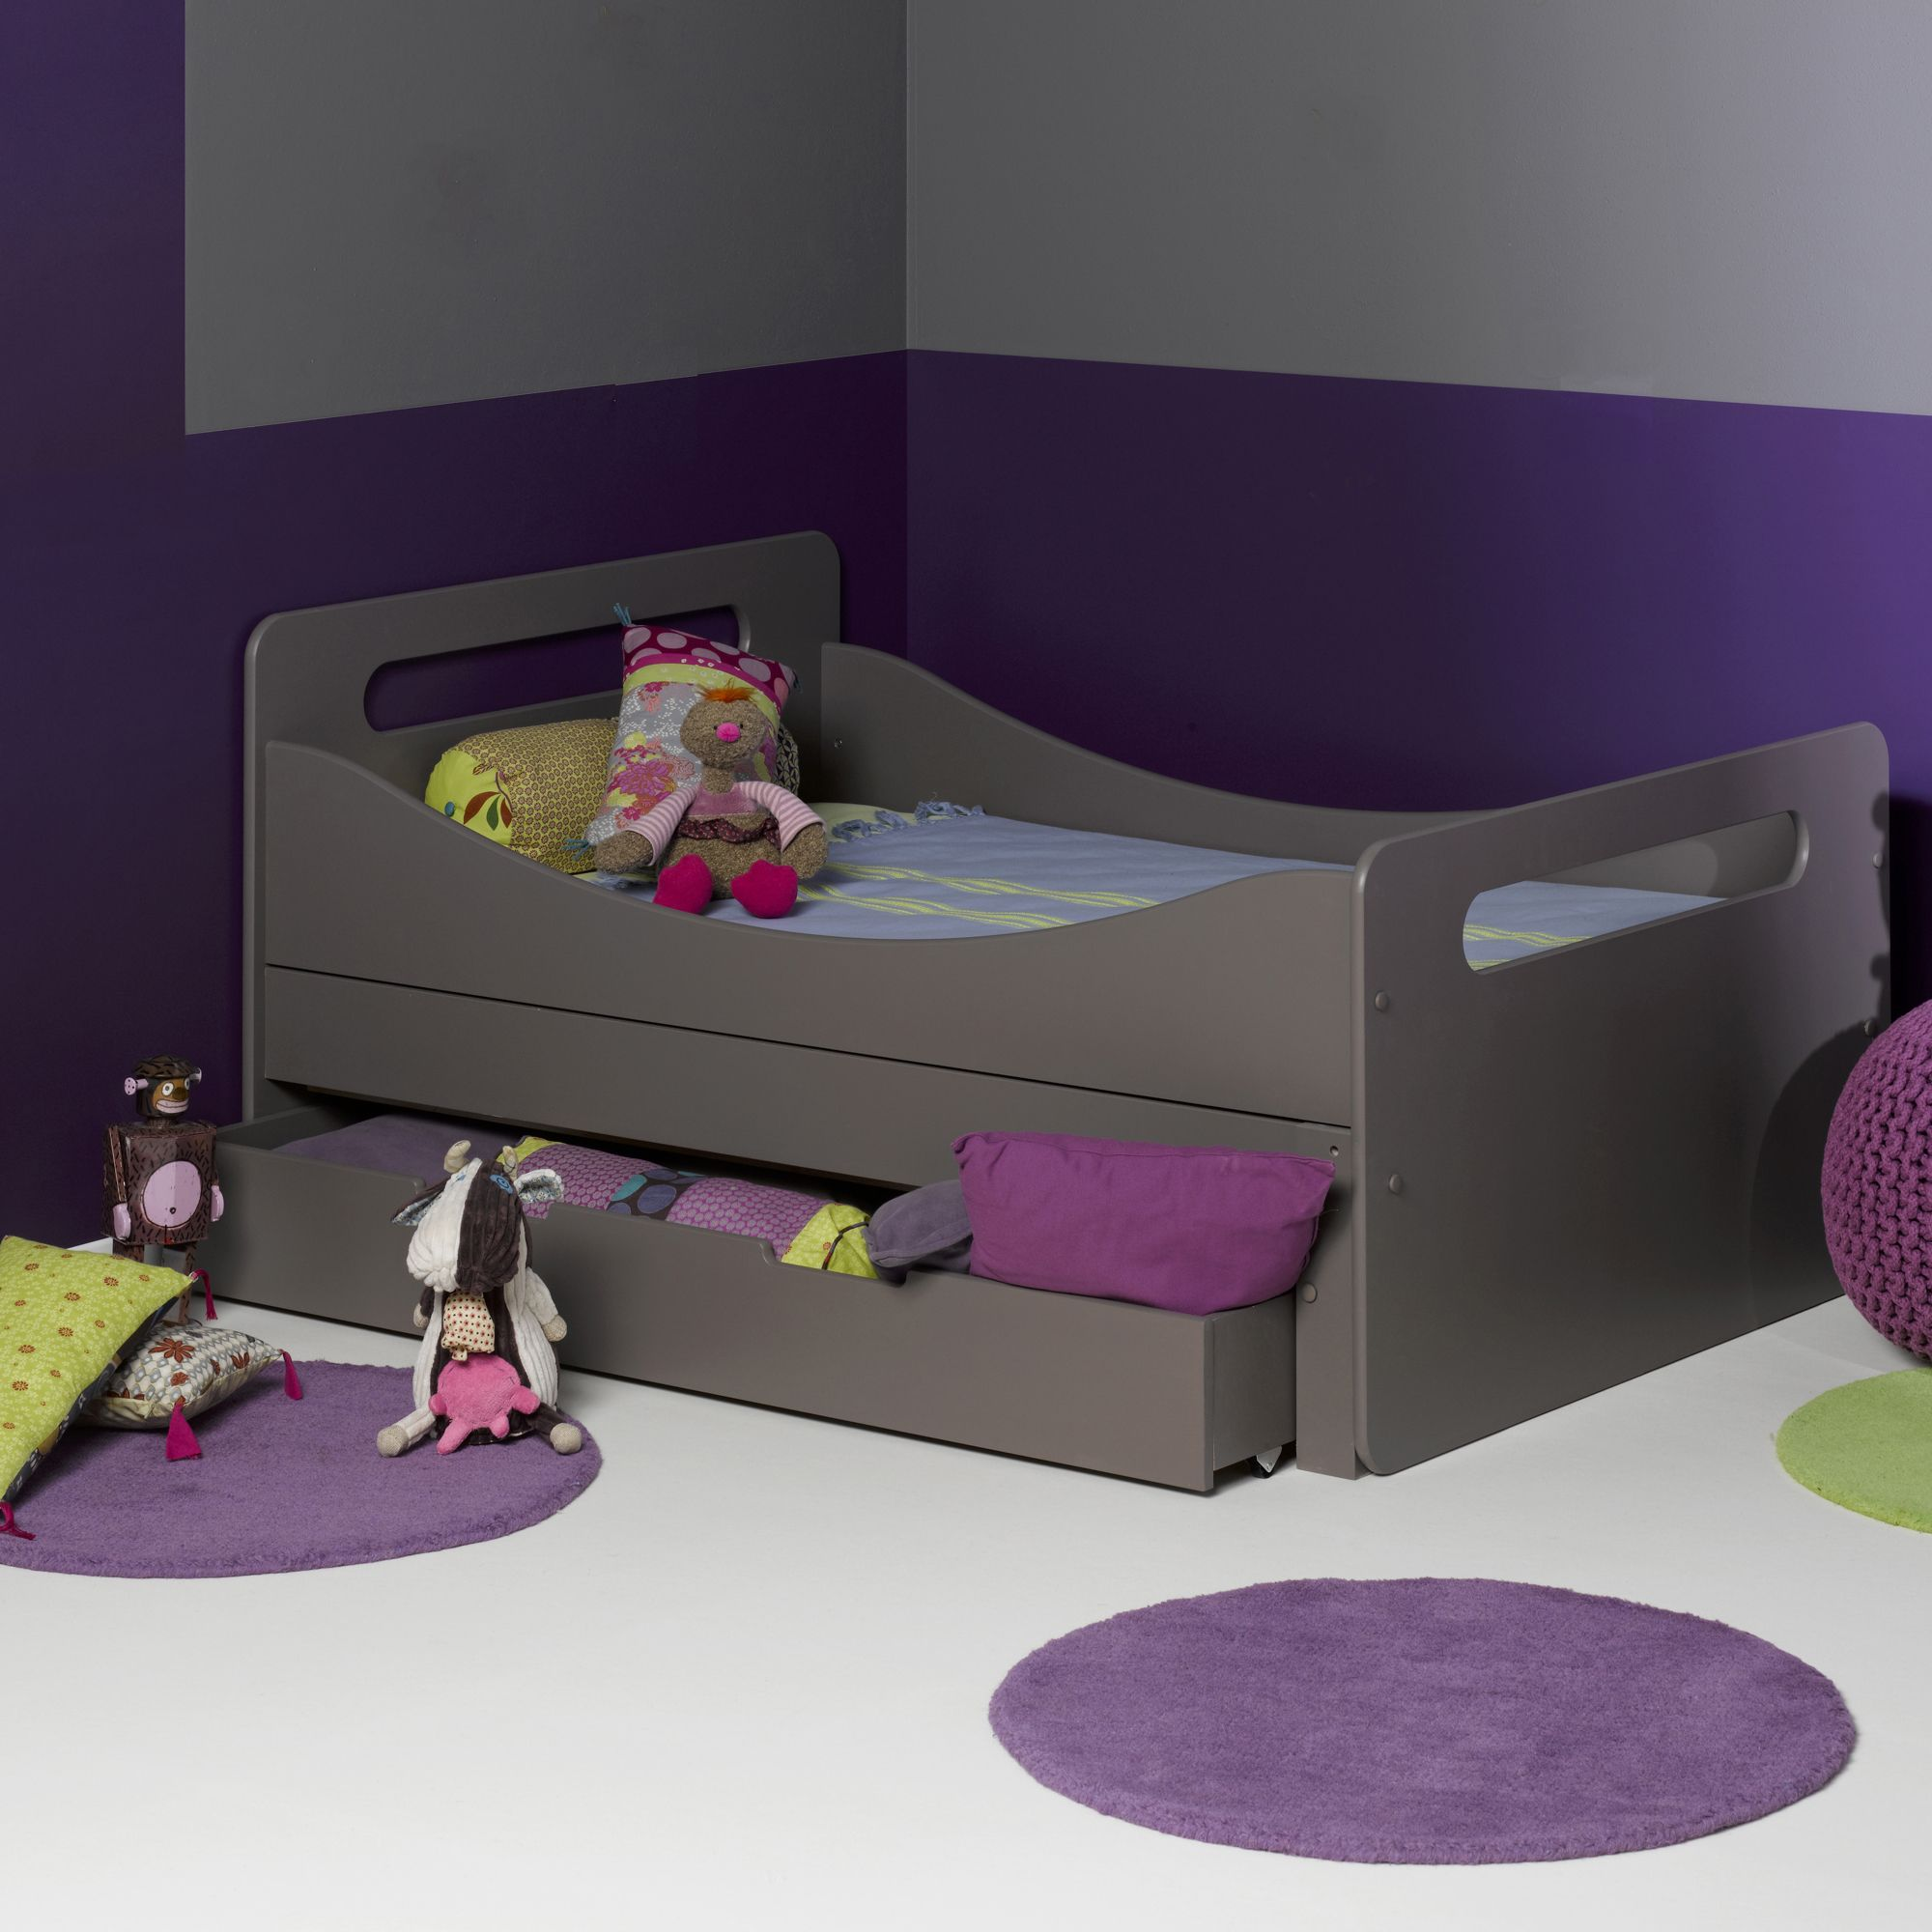 lit volutif pour enfant d s 2 ans tubiz 3 suisses lit enfant pinterest. Black Bedroom Furniture Sets. Home Design Ideas